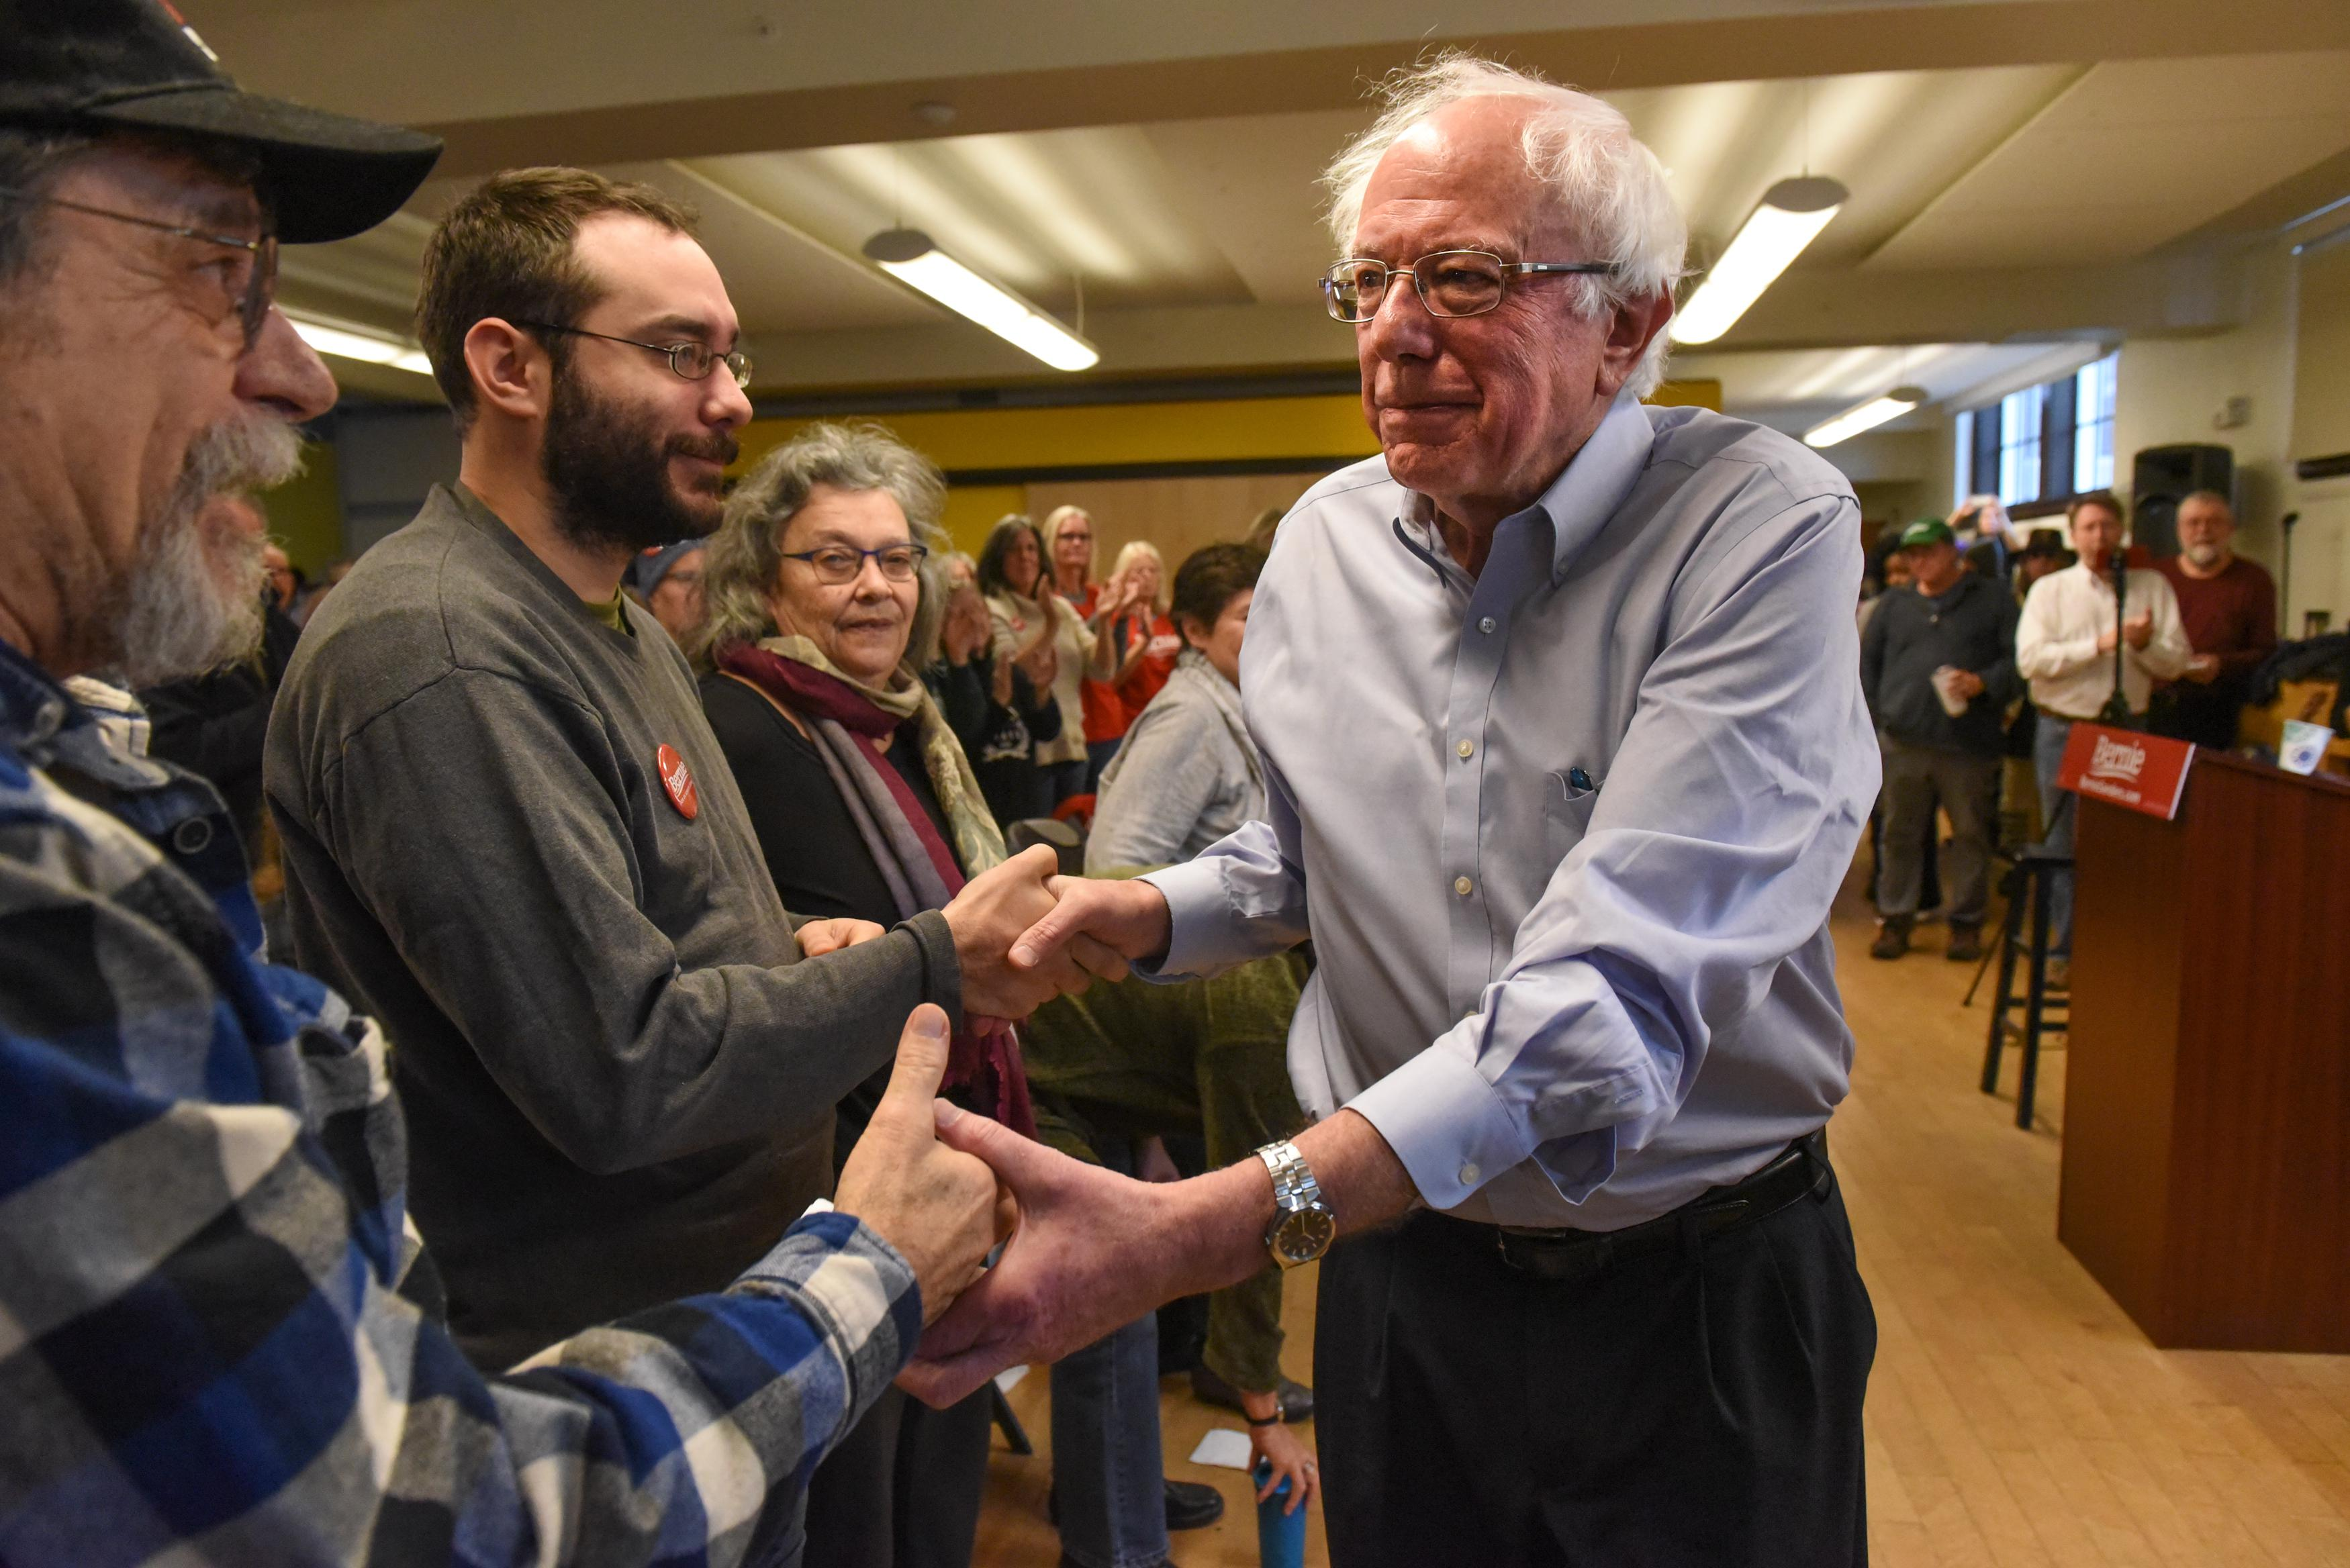 Sen. Bernie Sanders shakes hands with supporters at a campaign event in Vermont in November 2018.